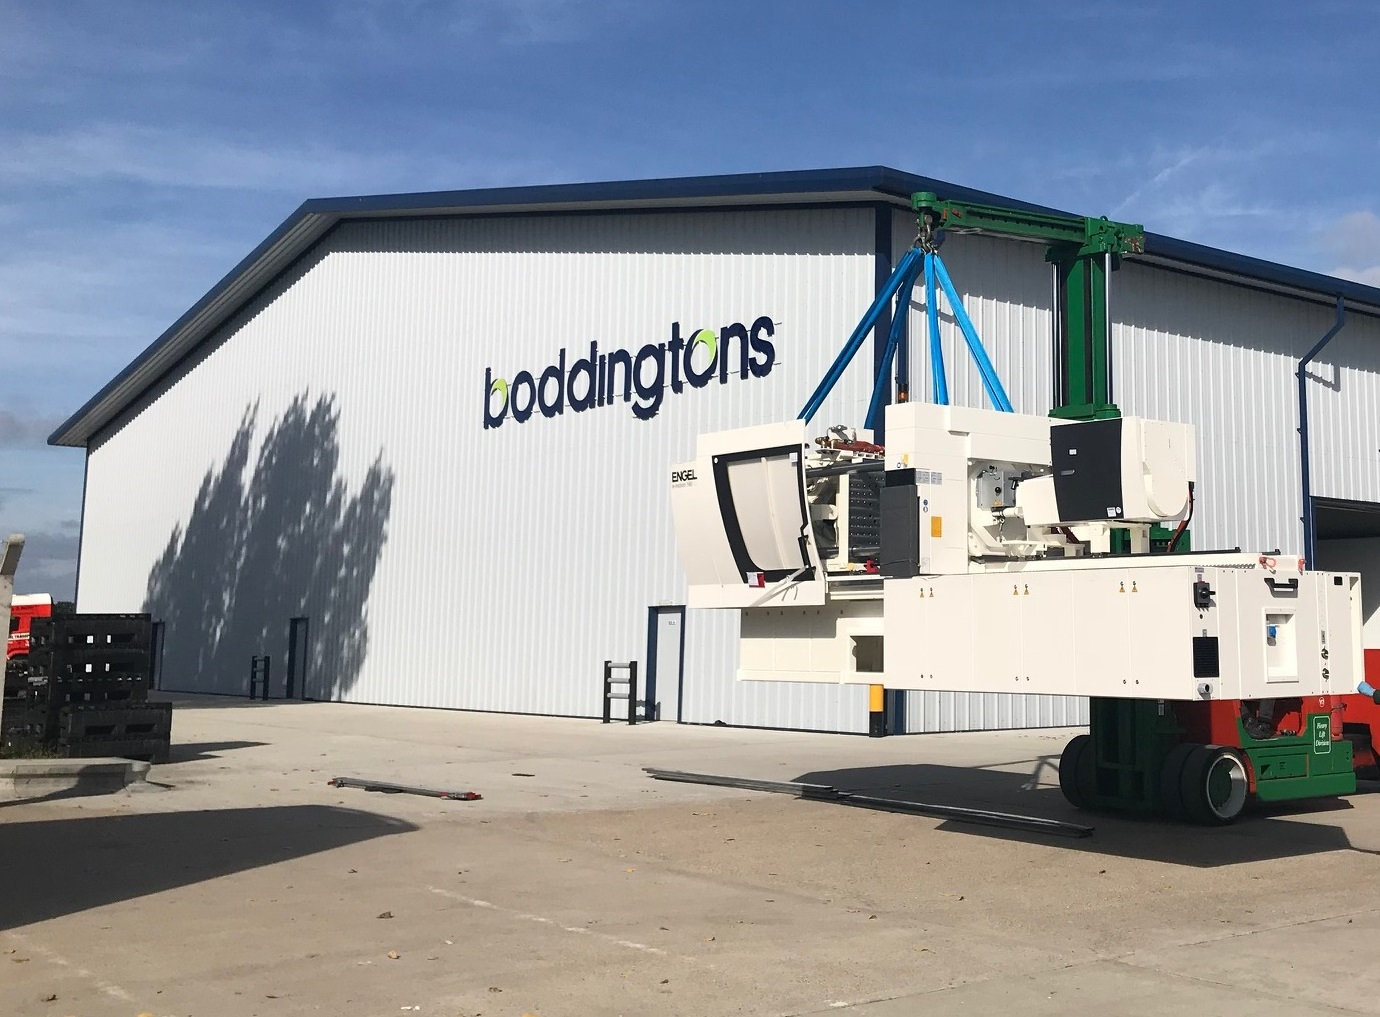 Boddingtons adds custom-made injection moulding capacity to